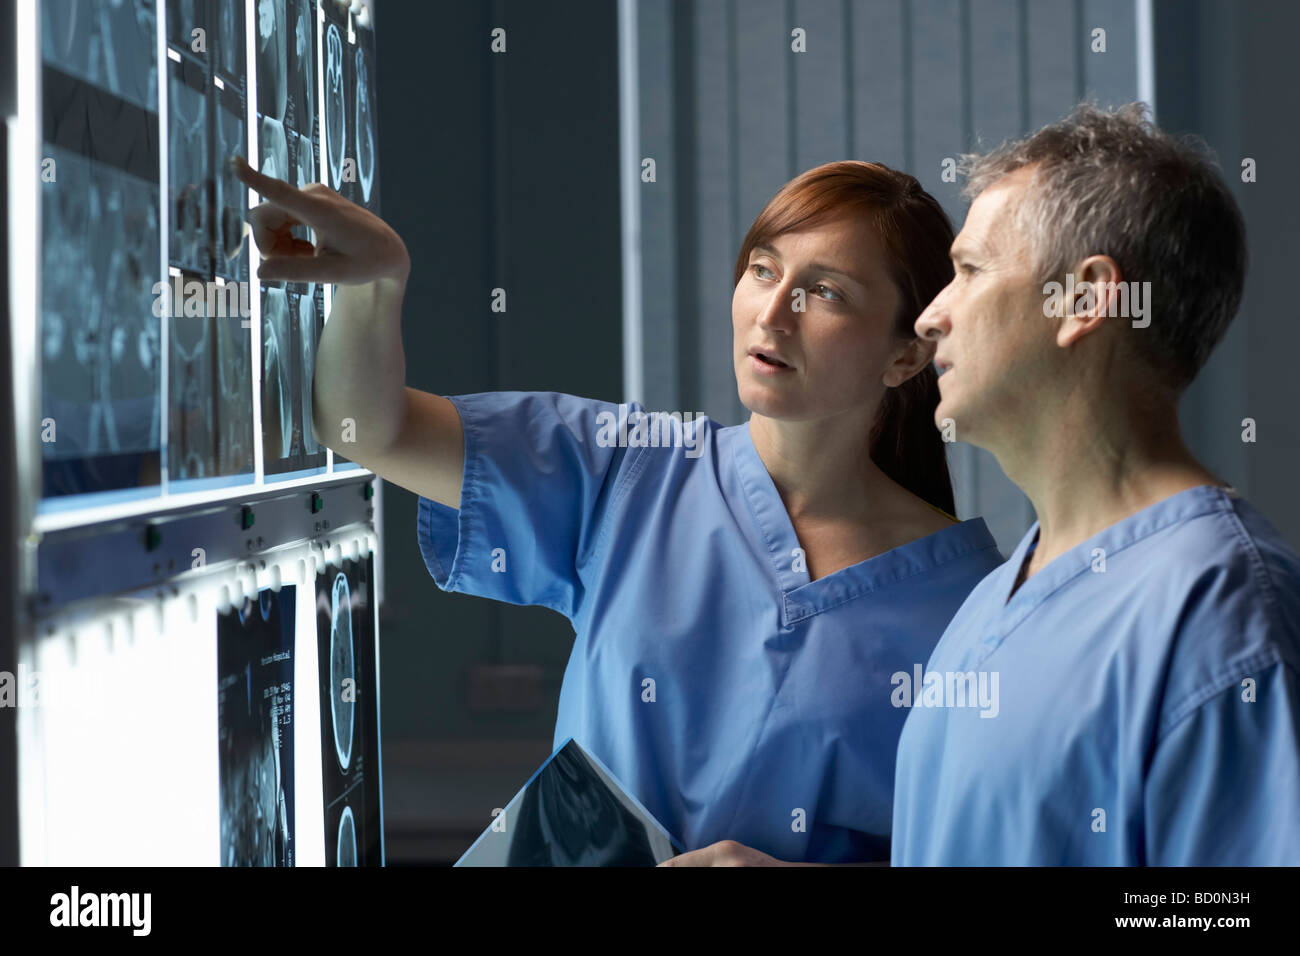 Two doctors looking at x-rays - Stock Image